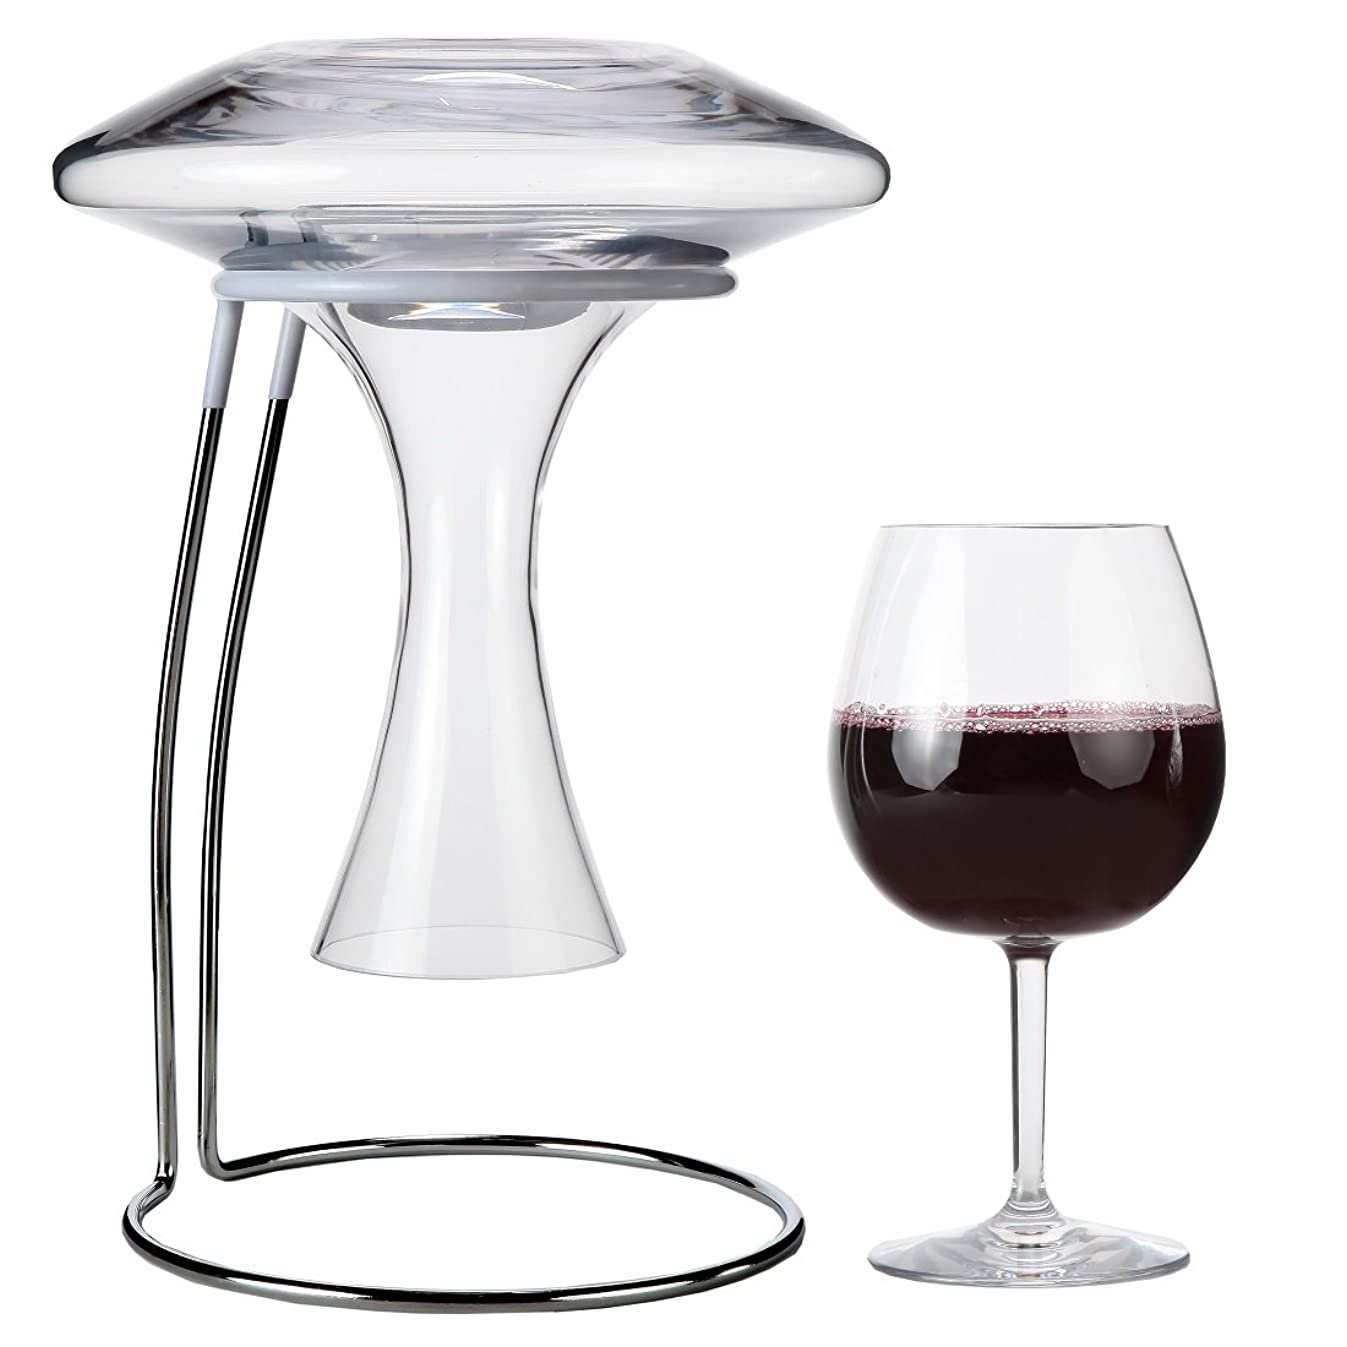 Lily's Home Wine Decanter Drying Stand with Rubber Coated Top to Prevent Scratches, Includes Cleaning Brush, For Standard Large Bottomed Wine Decanters, Decanter and Wine Glass NOT Included